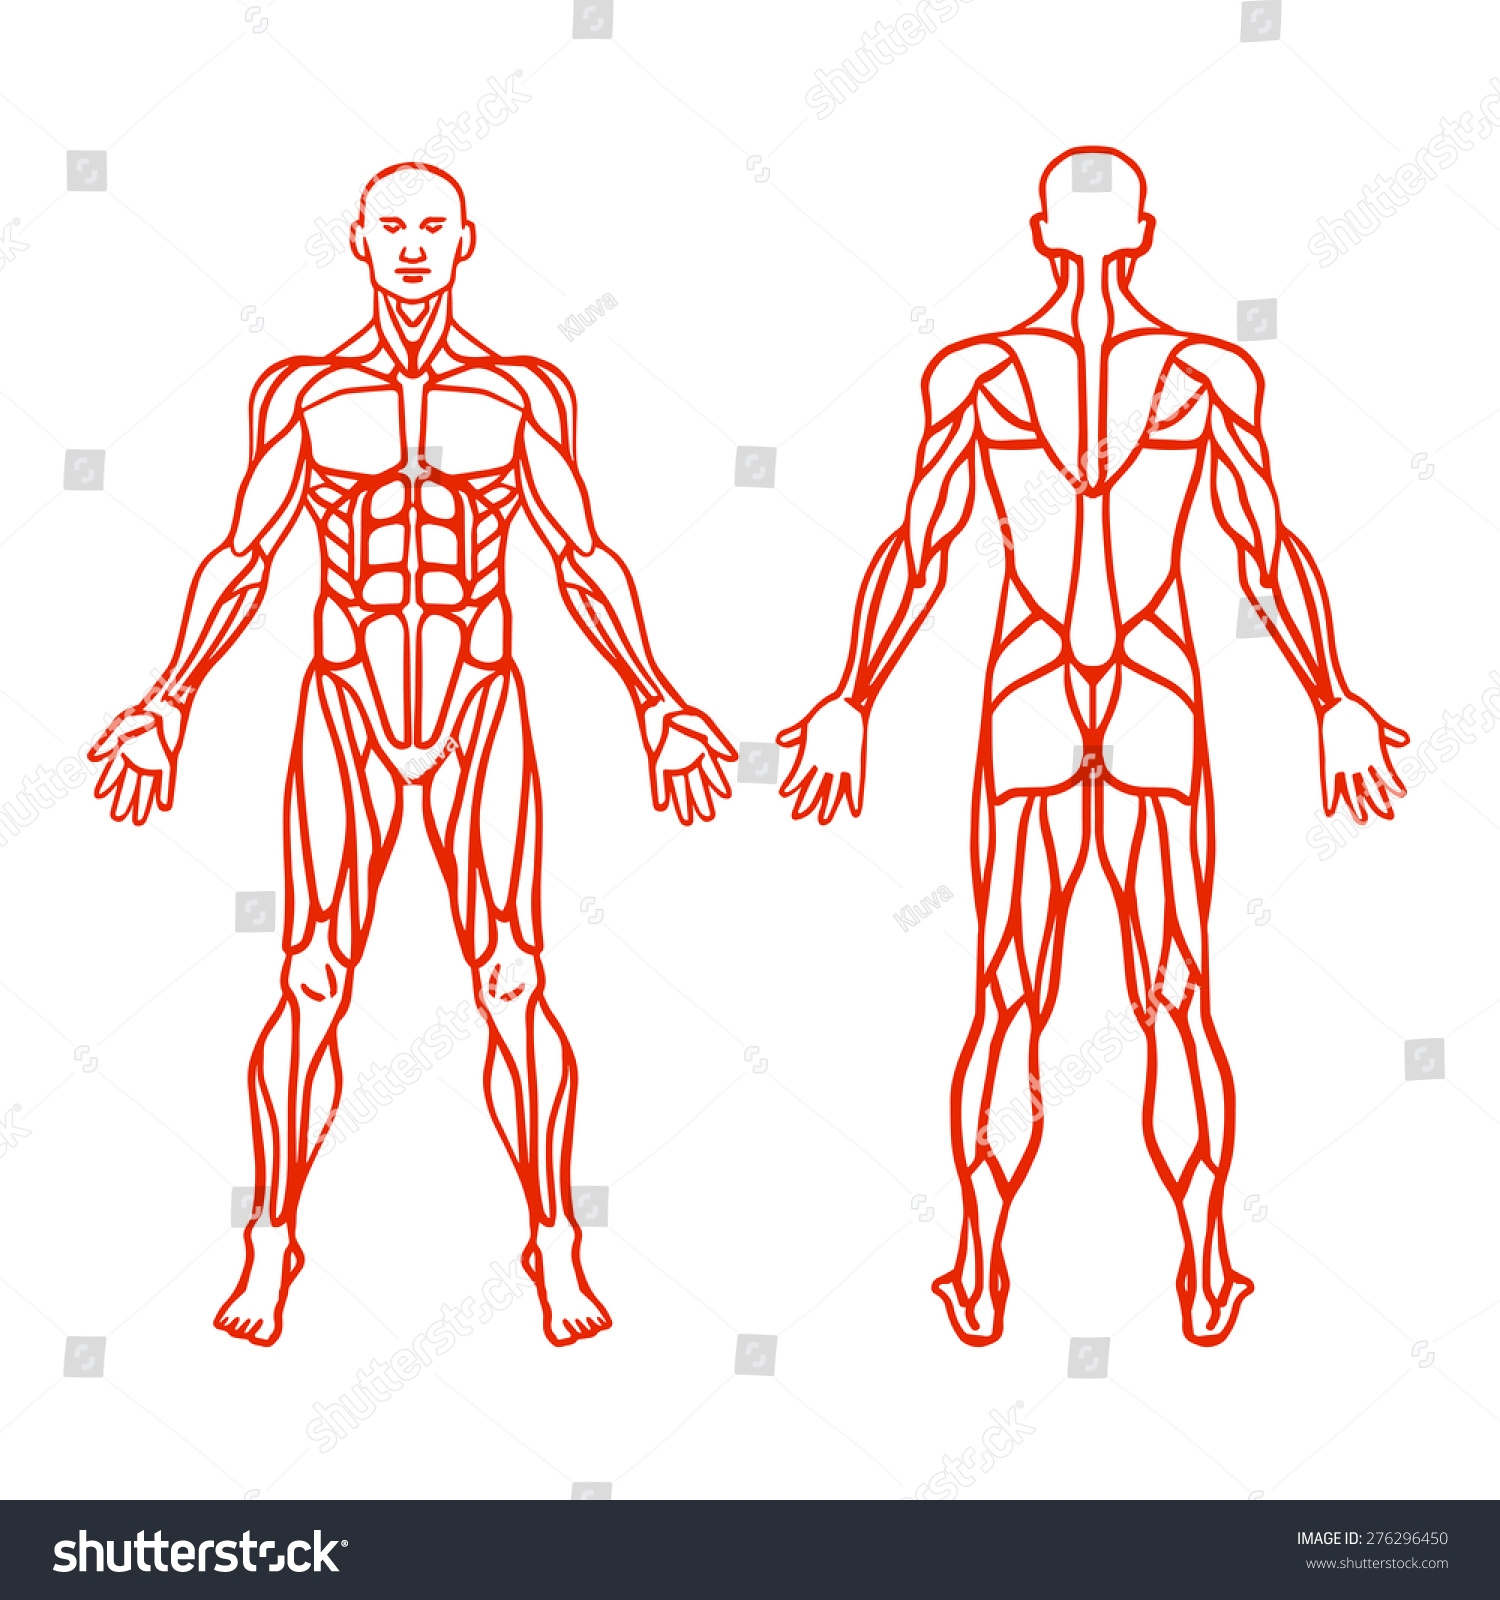 Anatomy Male Muscular System Exercise Muscle Stock Vector HD ...